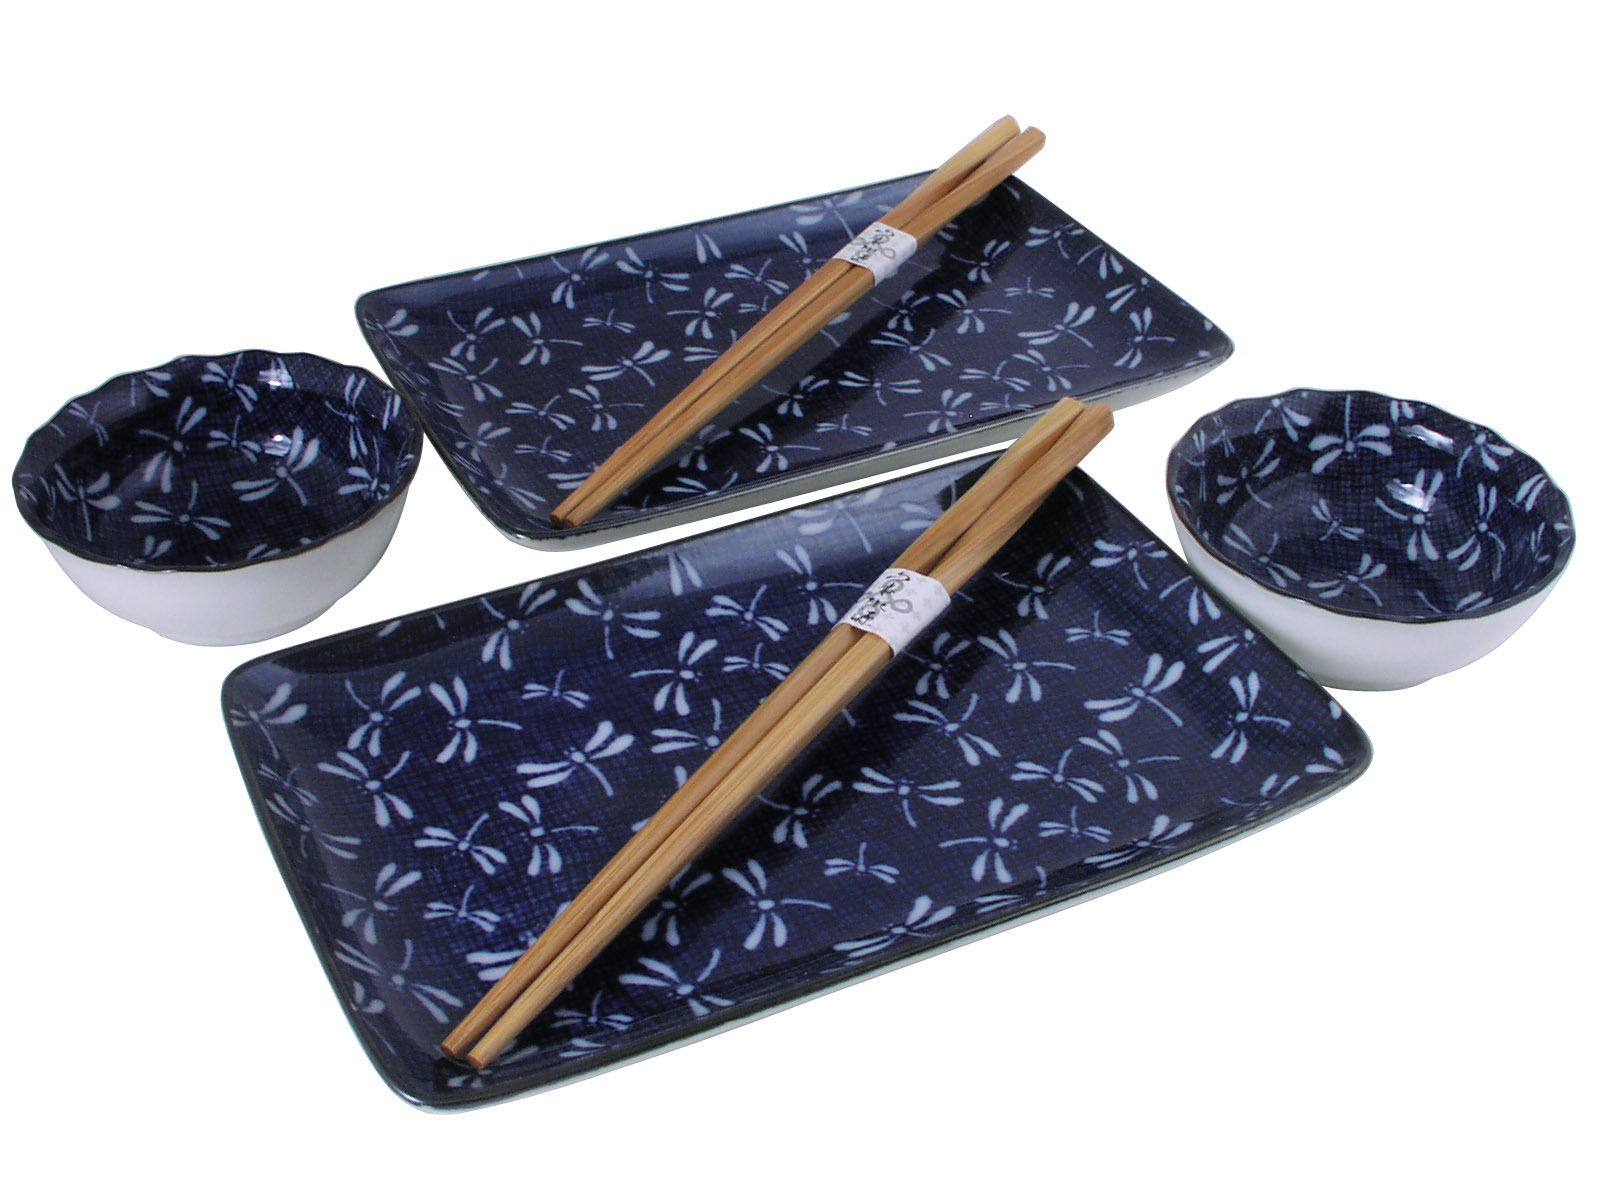 Navy Blue Spring Dance Of The Dragonfly Japanese Sushi